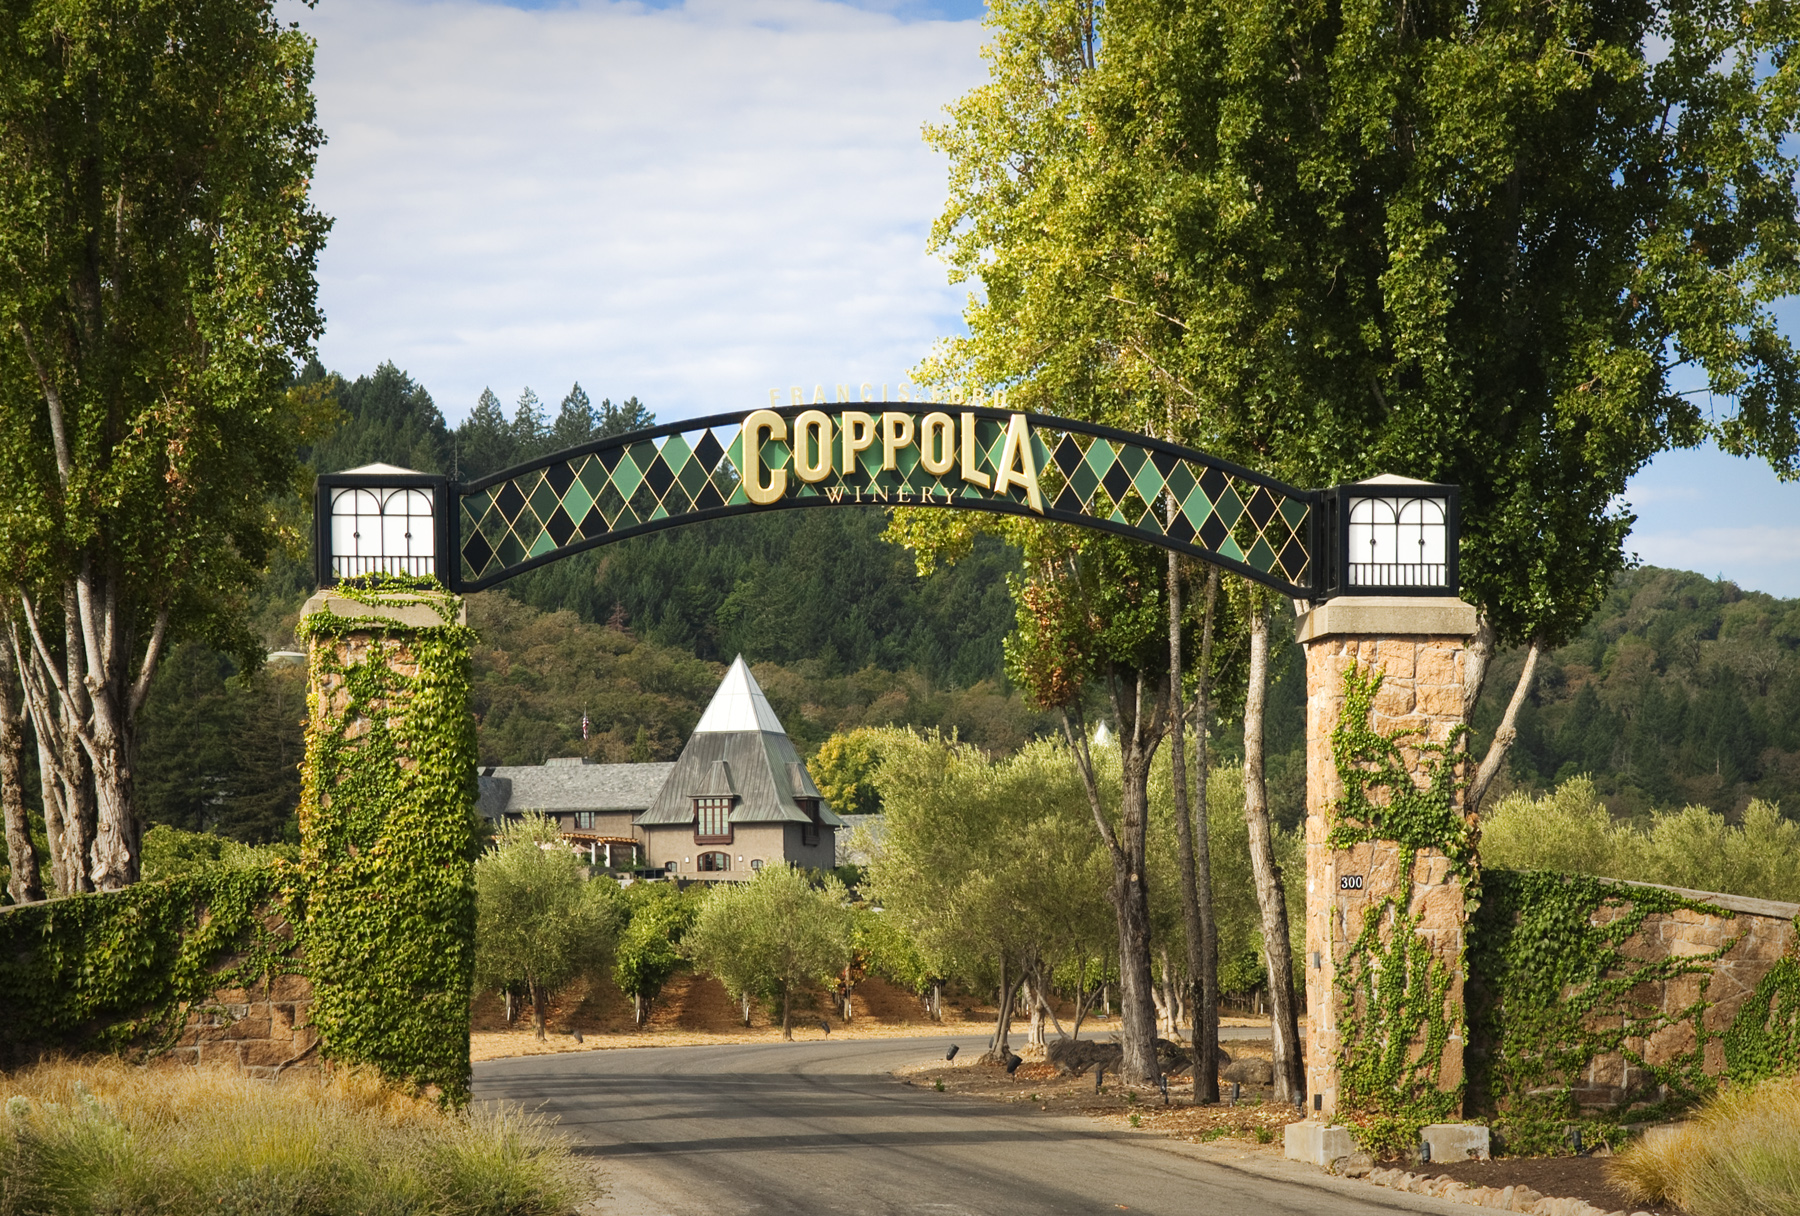 Frances Ford Coppola Winery attracts one of the most diverse crowds in Sonoma.